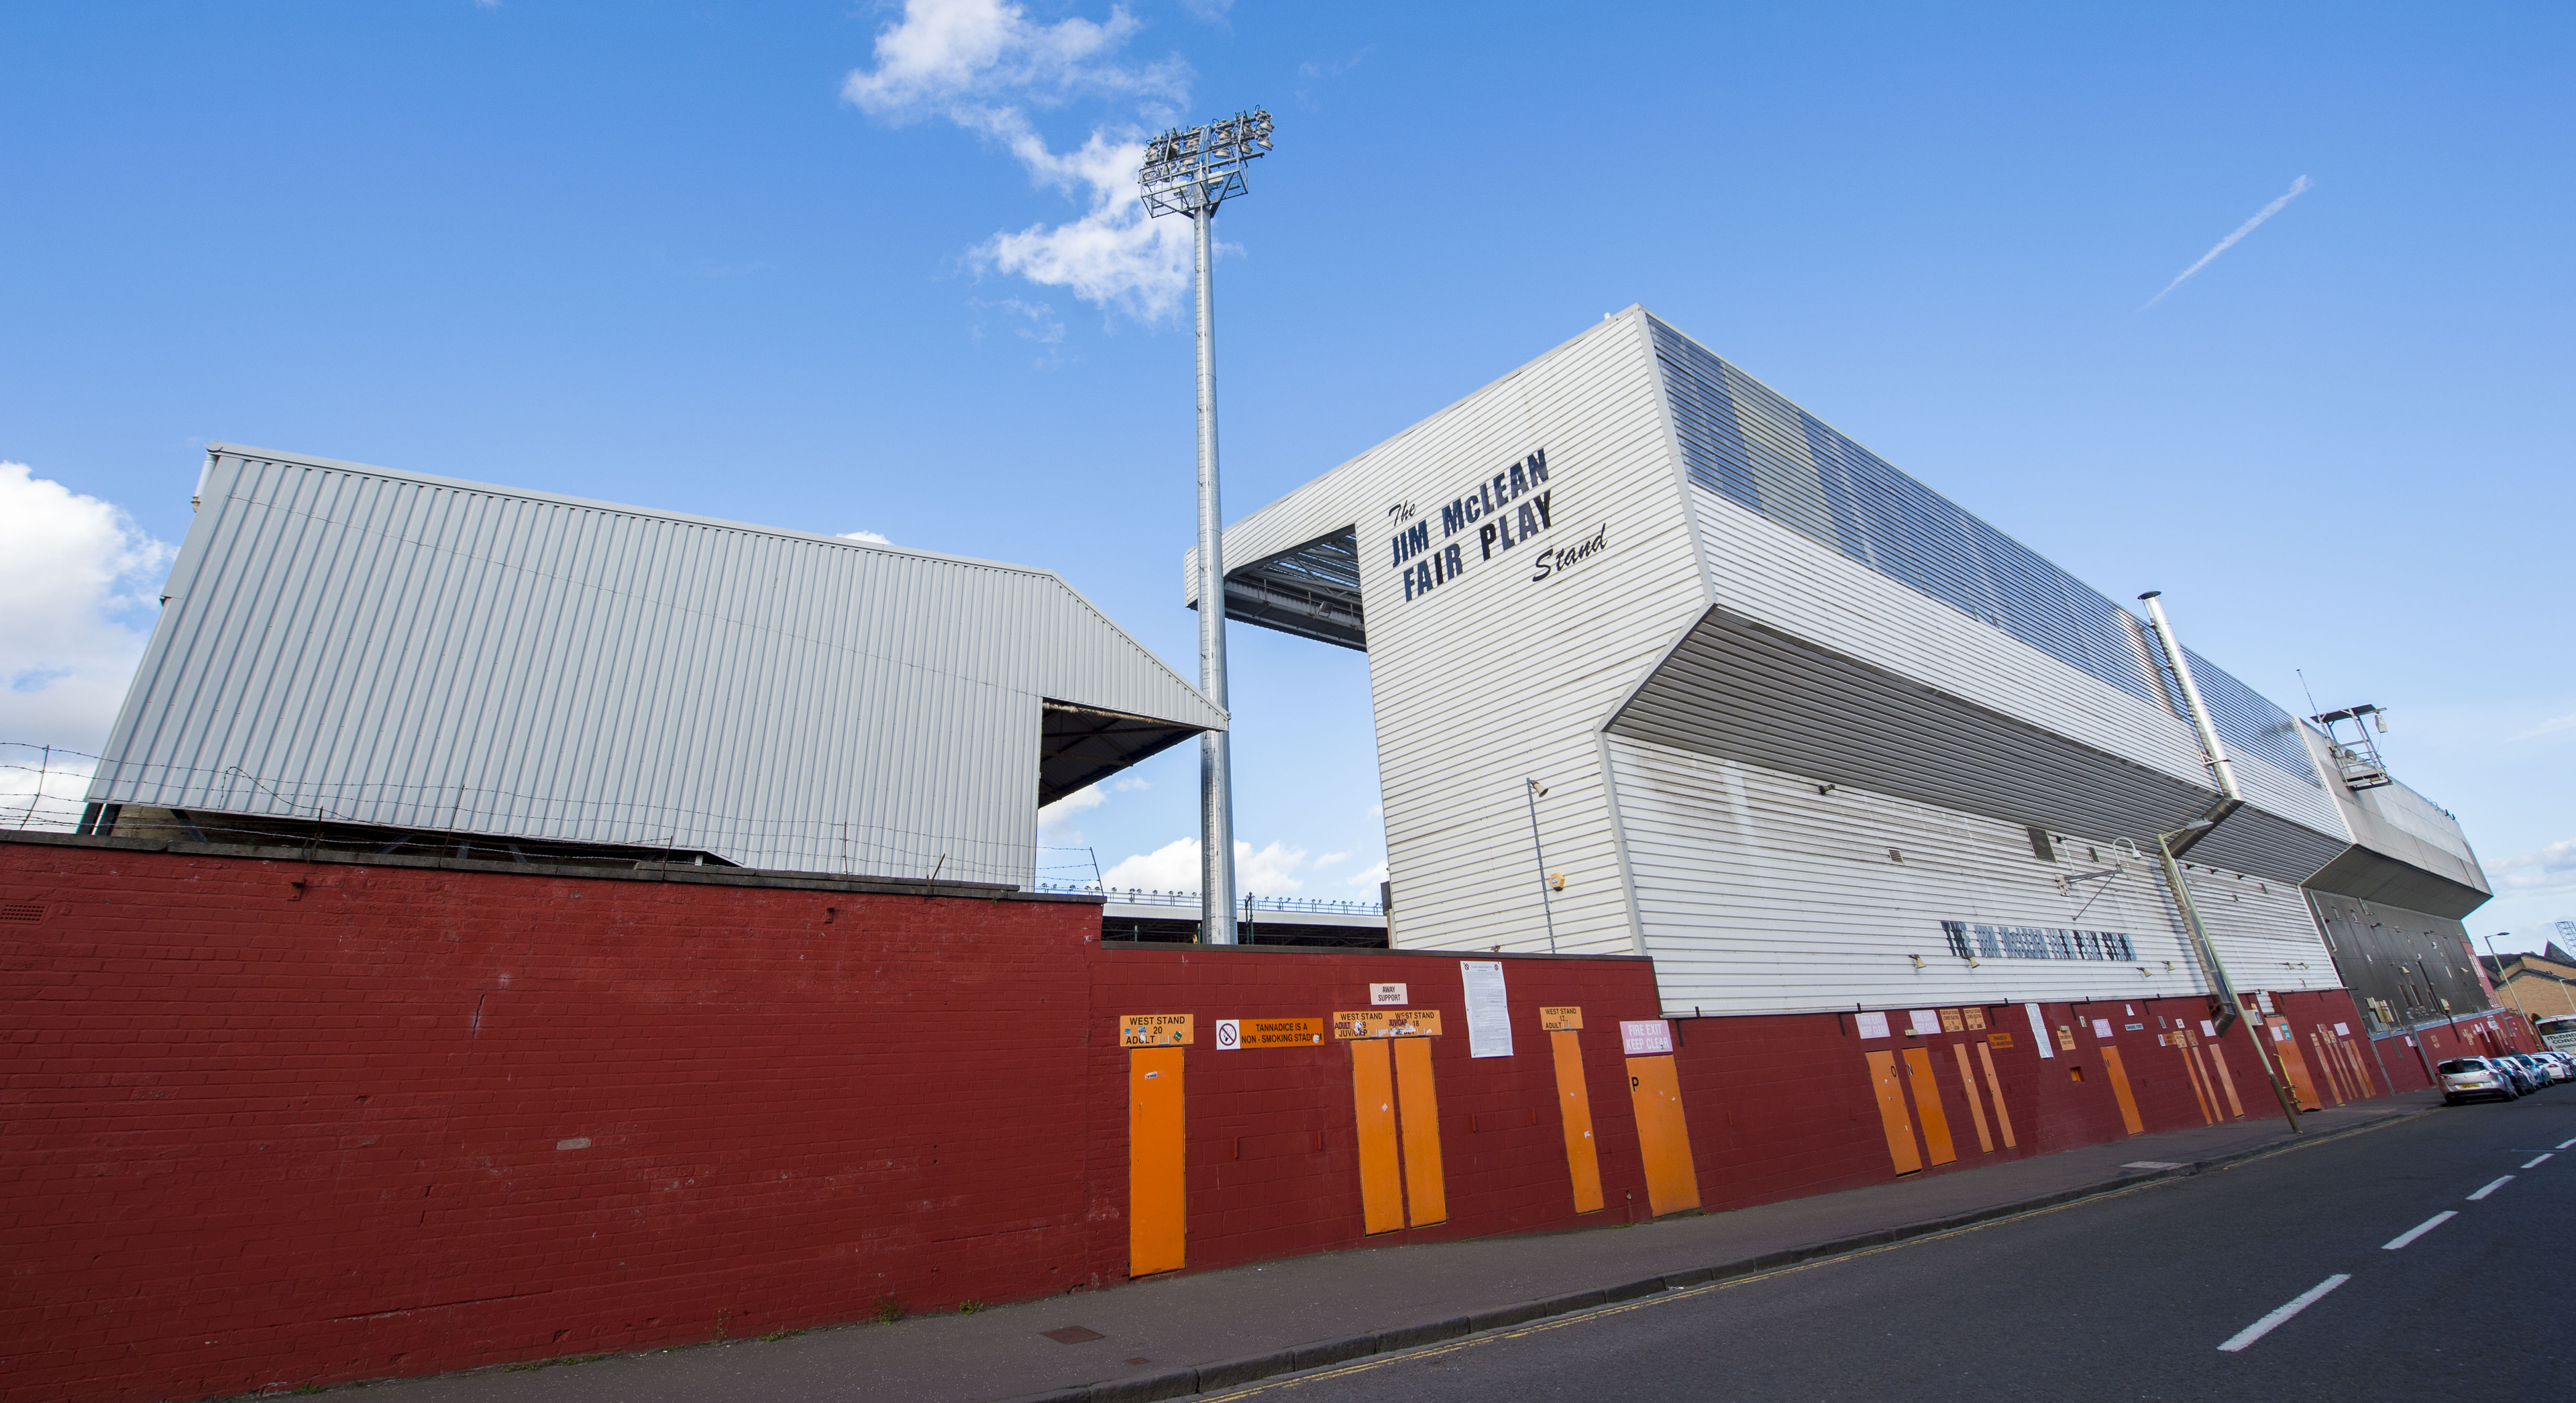 Fans of Dundee United are concerned, along with their Dens Park rivals Dundee.